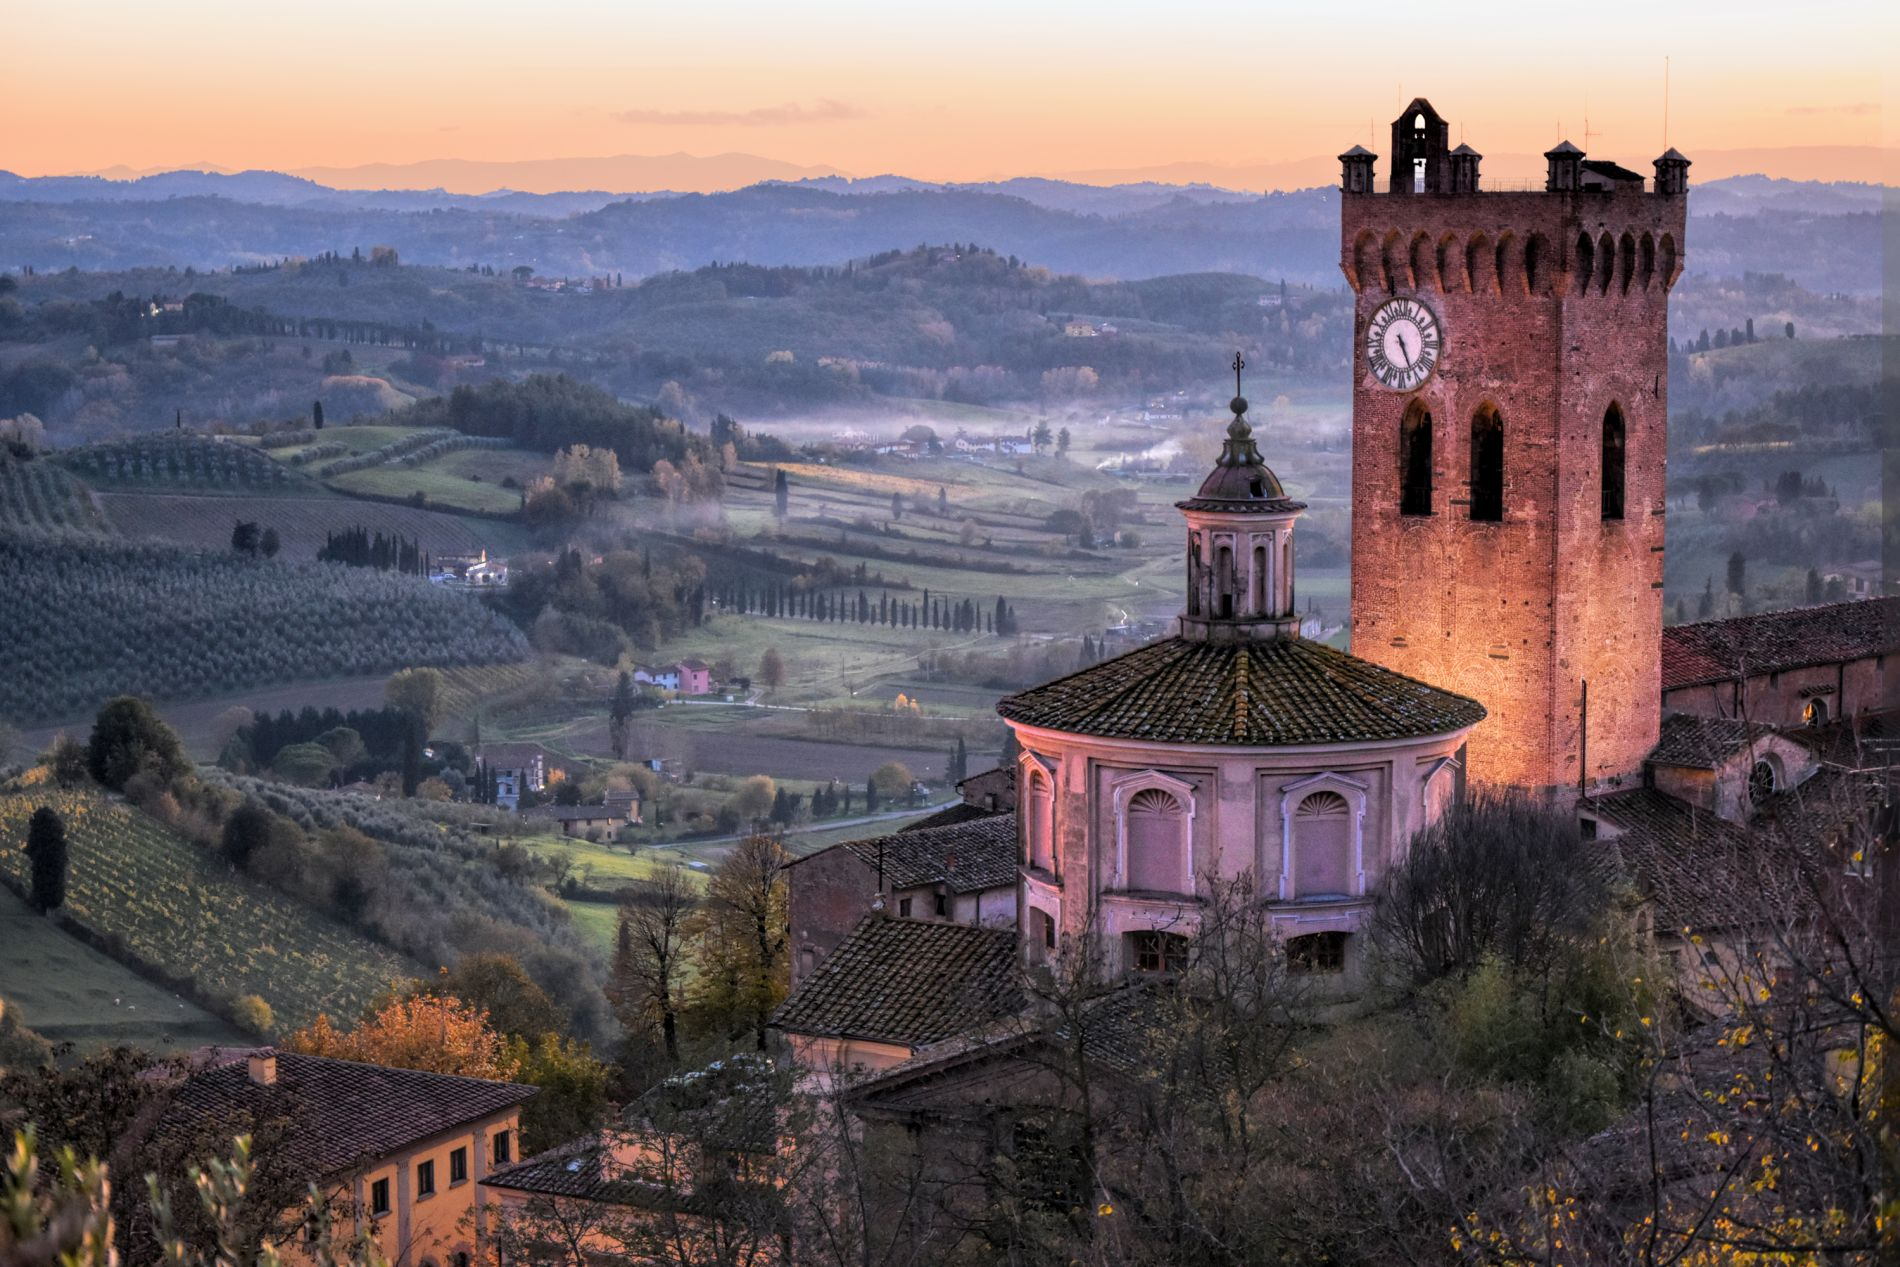 San Miniato from above